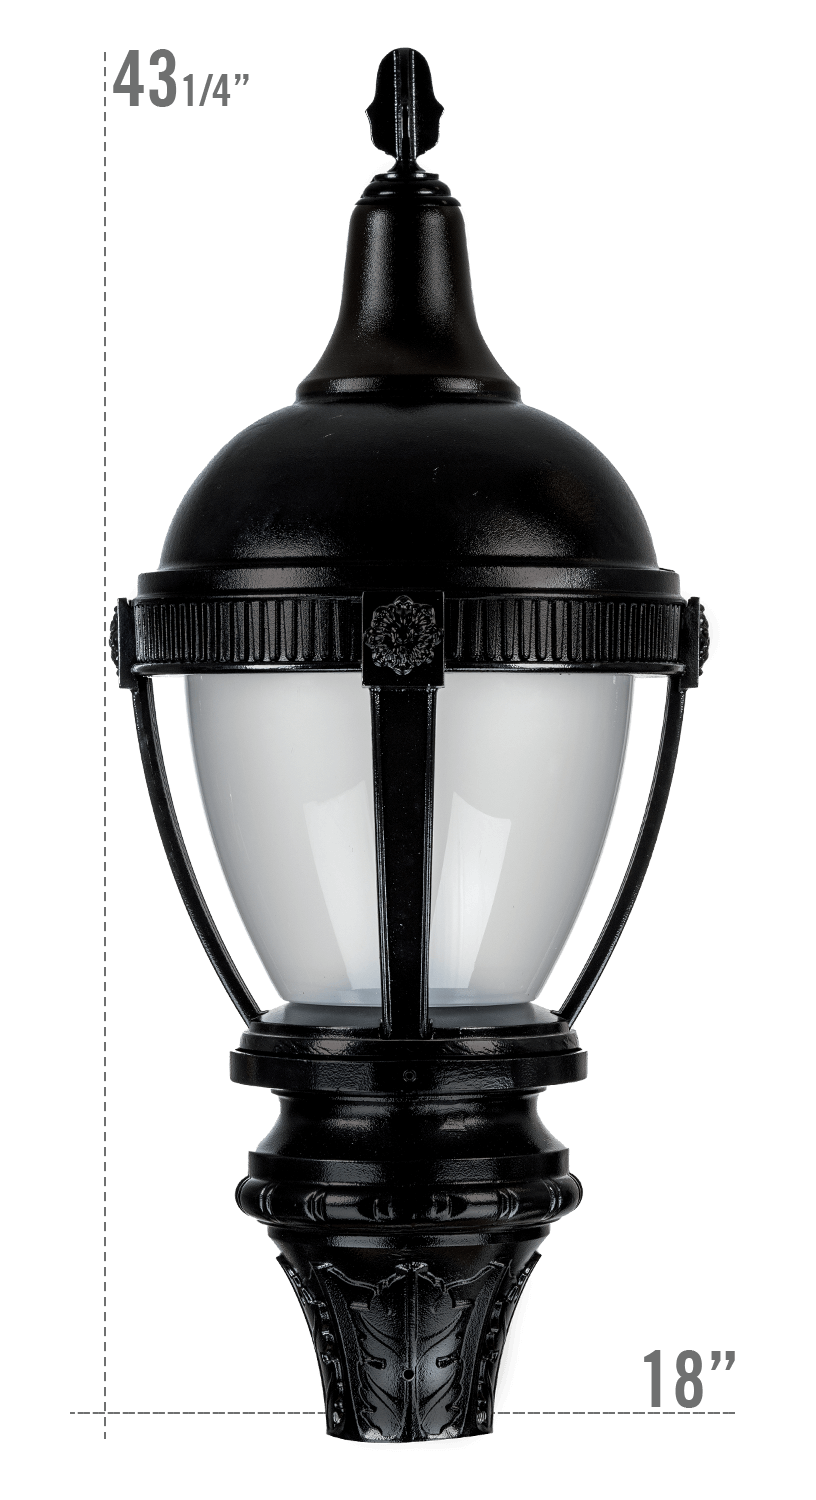 THE ROUND ROOF AUGUSTA LED LUMINAIRE WITH NEW FRONTIER FITTER FROSTED GLOBE